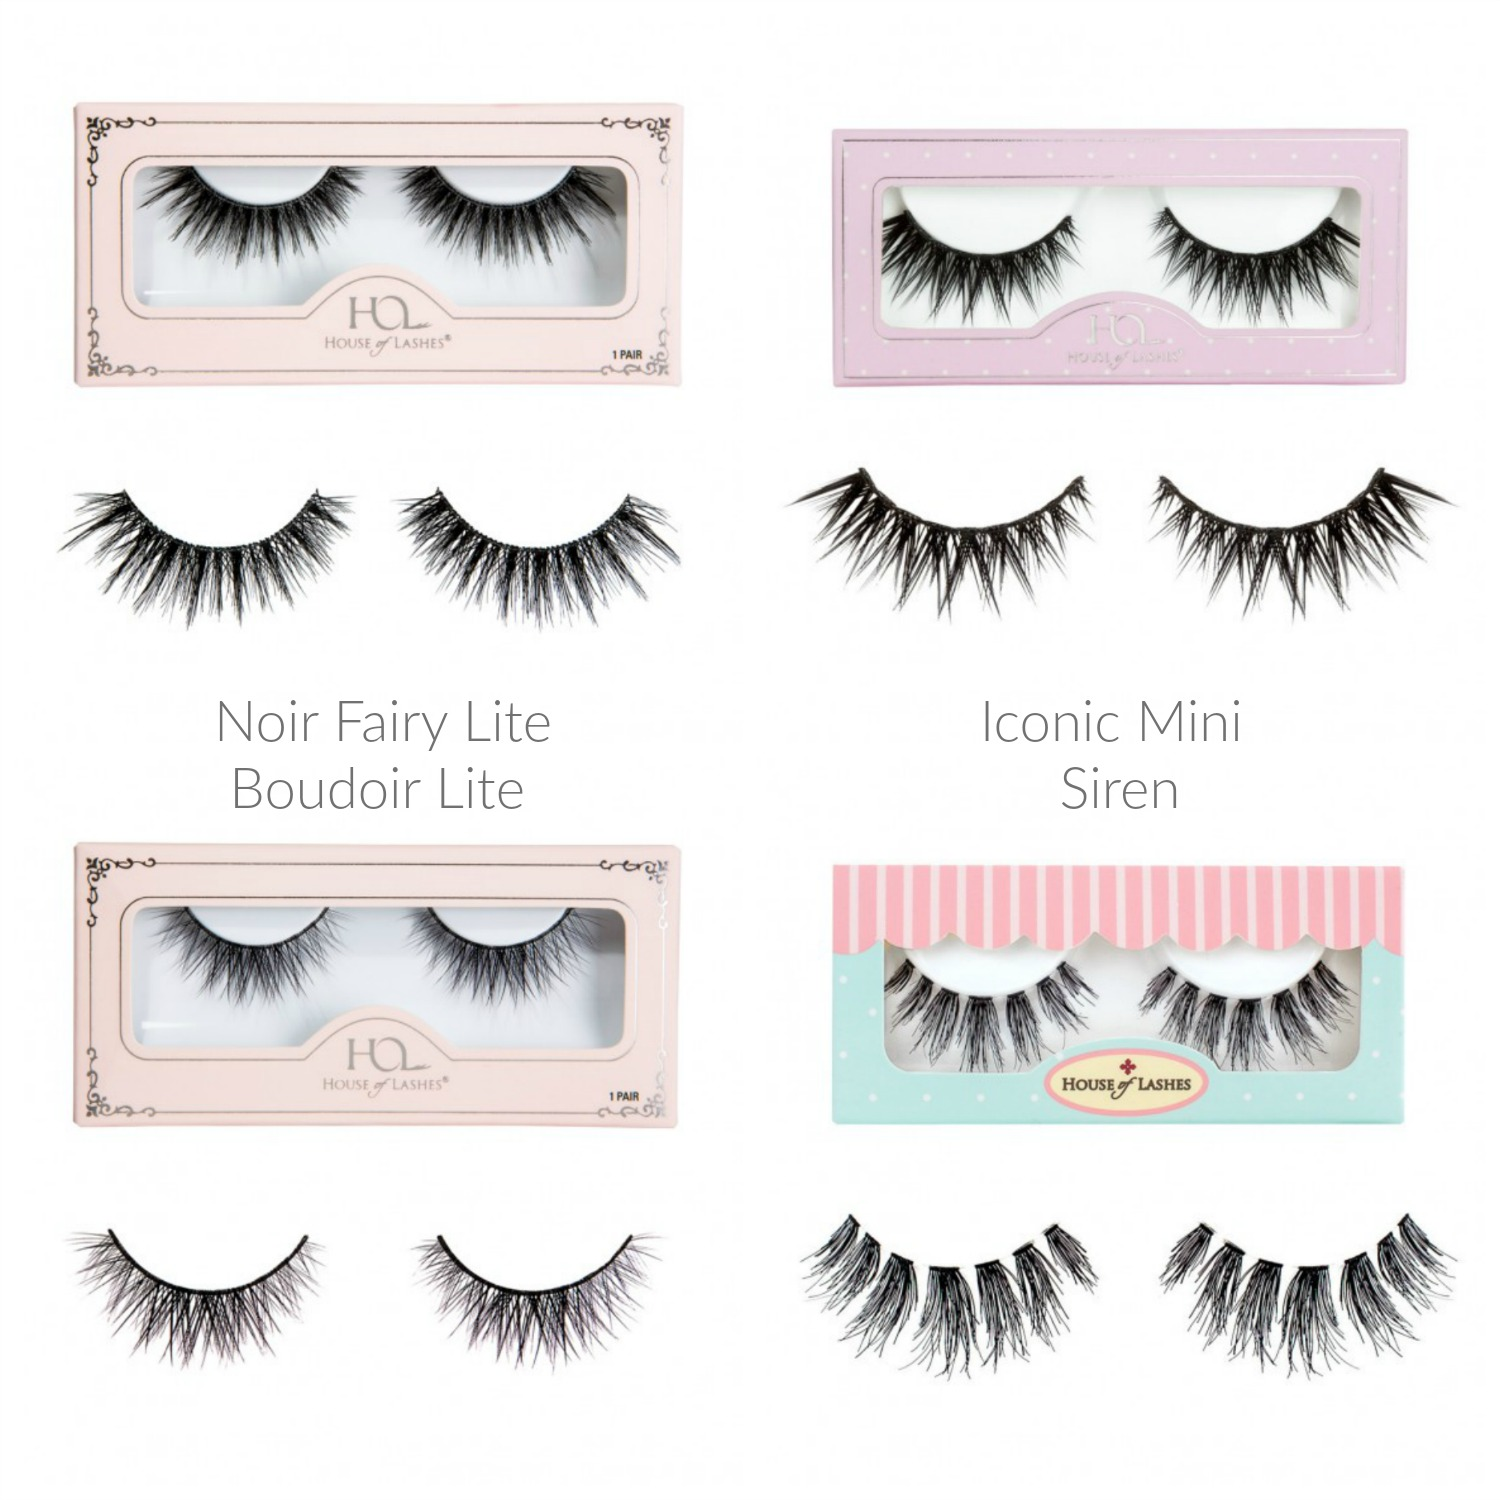 Trying Out House of Lashes Next To Try